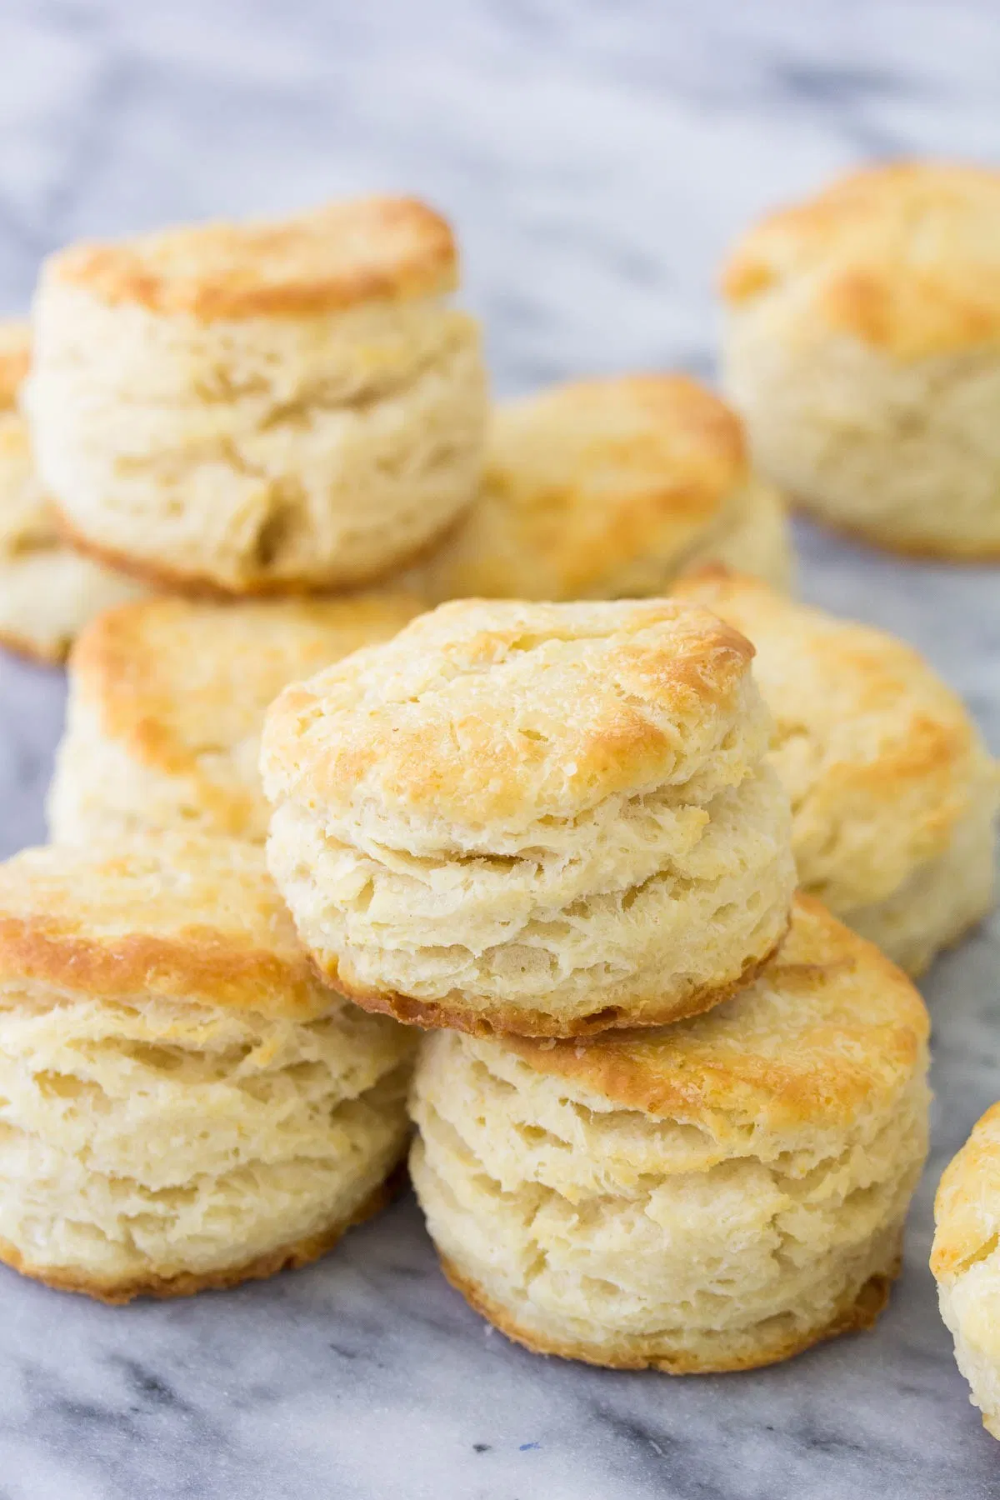 The Best Biscuit Recipe These Homemade Biscuits Are Fluffy And Tender With Lots Of Flaky Layers In 2020 Best Homemade Biscuits Best Biscuit Recipe Homemade Biscuits